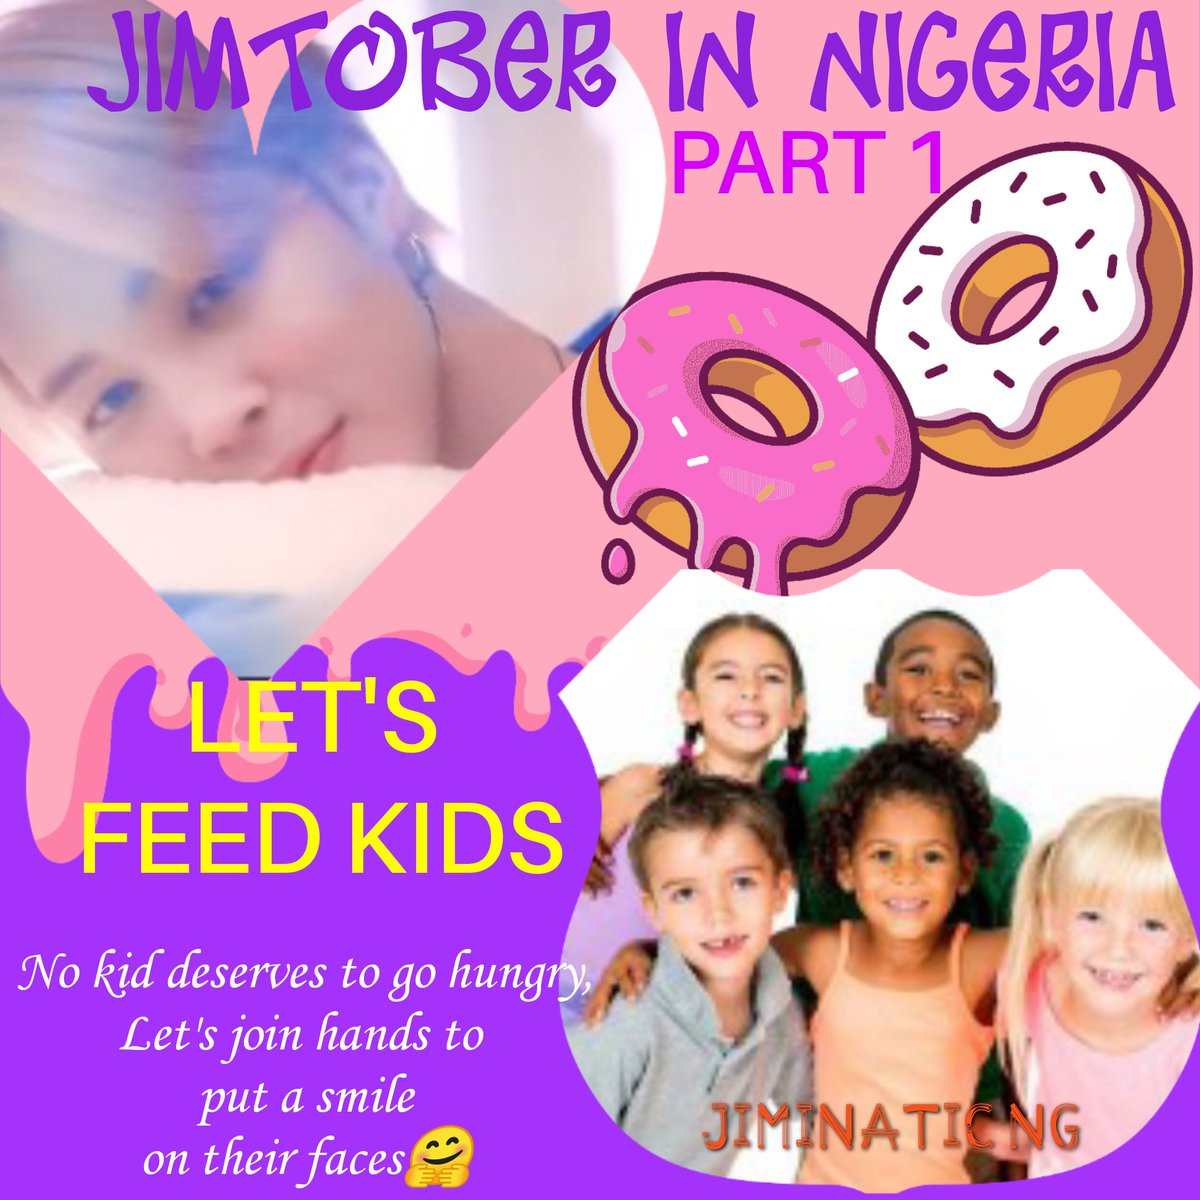 JIMTOBER IN NIGERIA PROJECT🇳🇬 PART 1  LET'S FEED KIDS Help put smile on the faces of children as we feed them during Jimtober.  Let's extend the love we learmt from Jimin to kids🤗🤗💪  No amount is too little🥺  You can help us donate here🤲; https://t.co/ocKGT3oRre  Thank you🥺 https://t.co/A9zmPCfETM